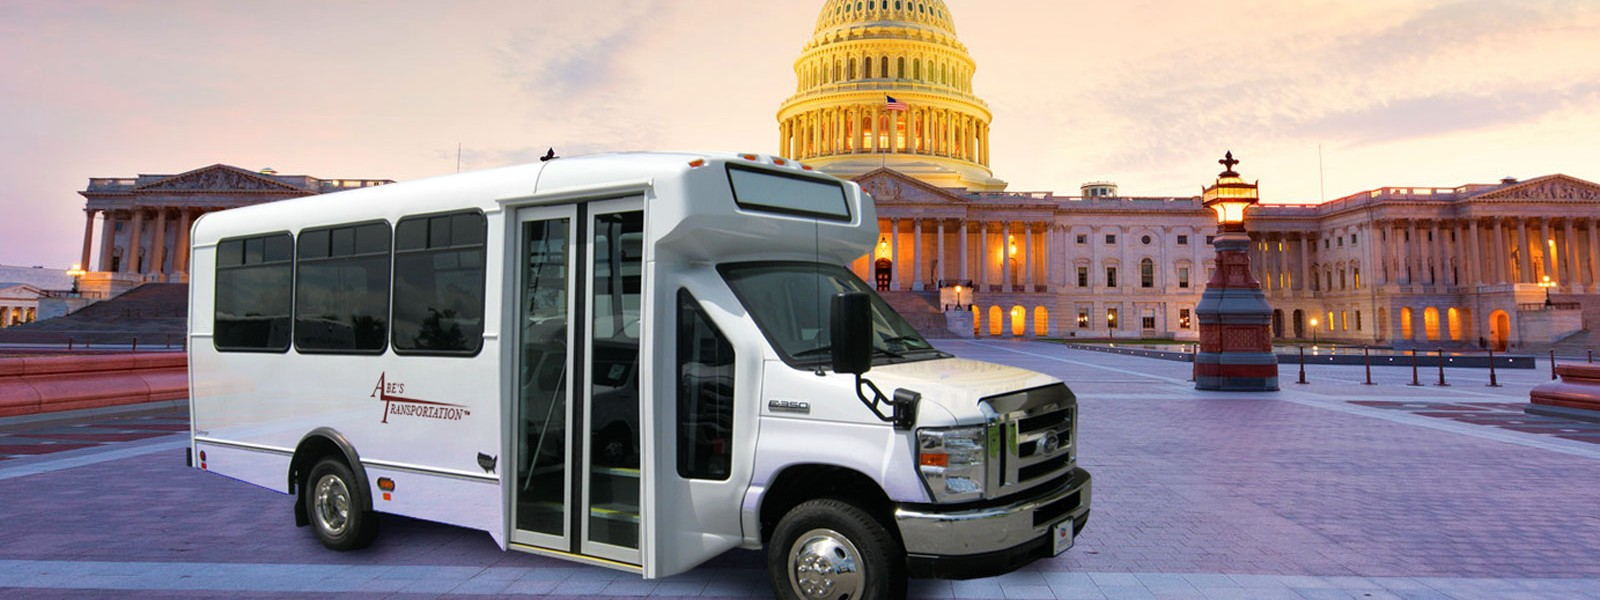 cdl bus driver job in dc